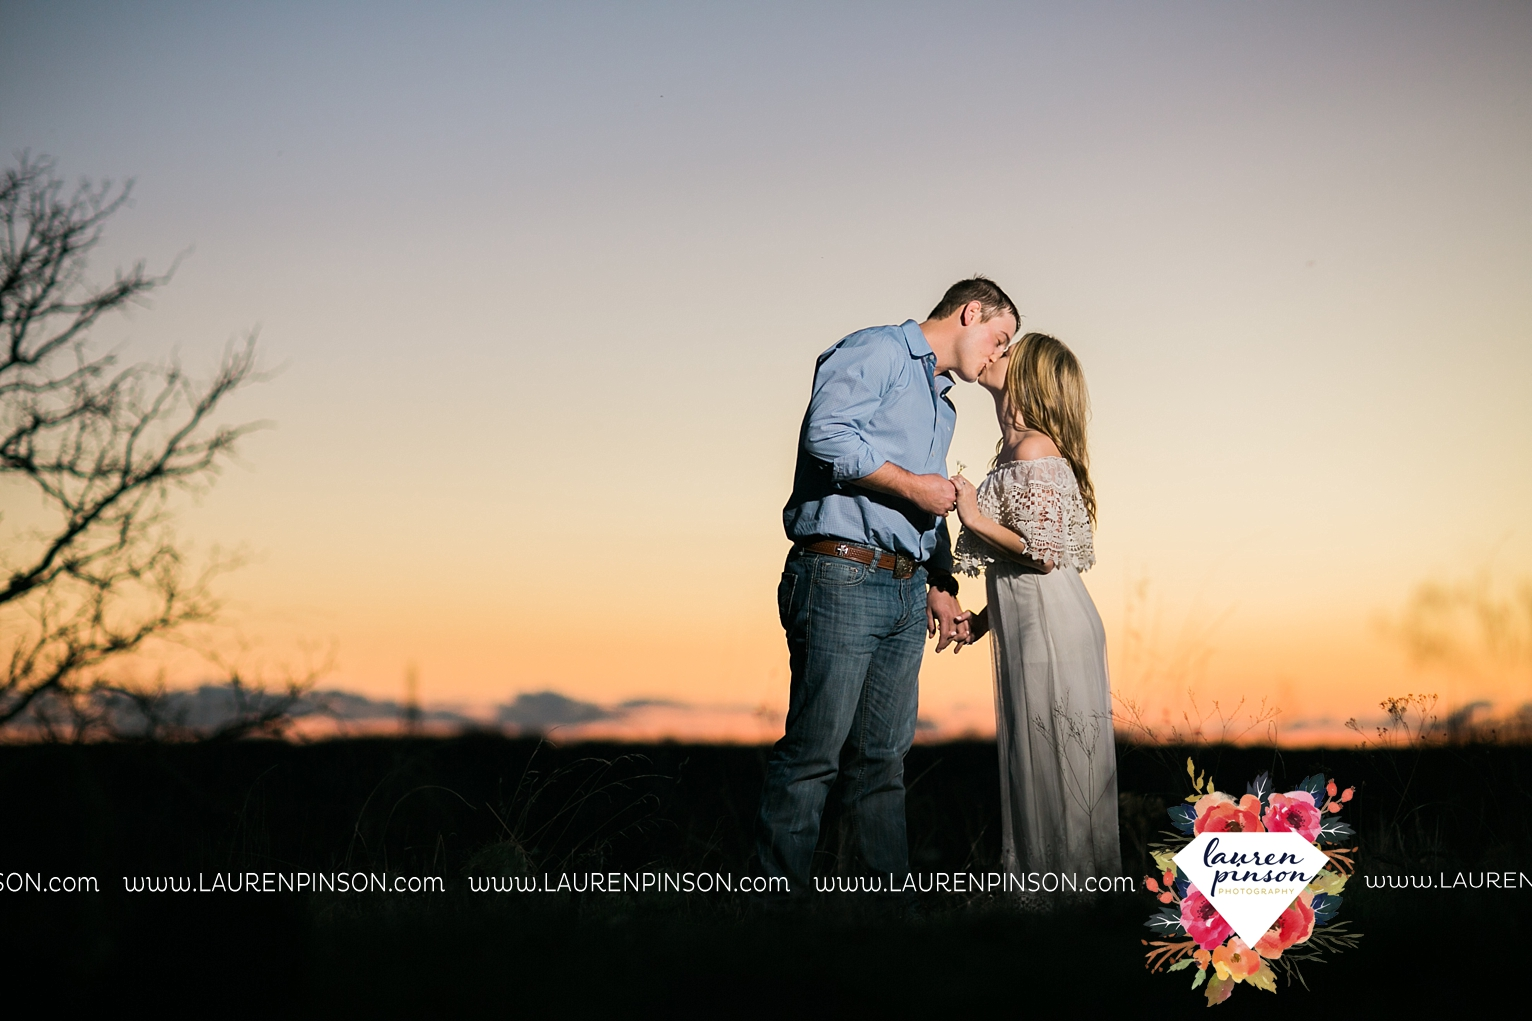 Wichita-falls-texas-country-outdoor-wheat-field-windthorst-engagement-session-and-wedding-photographer-00001.jpg